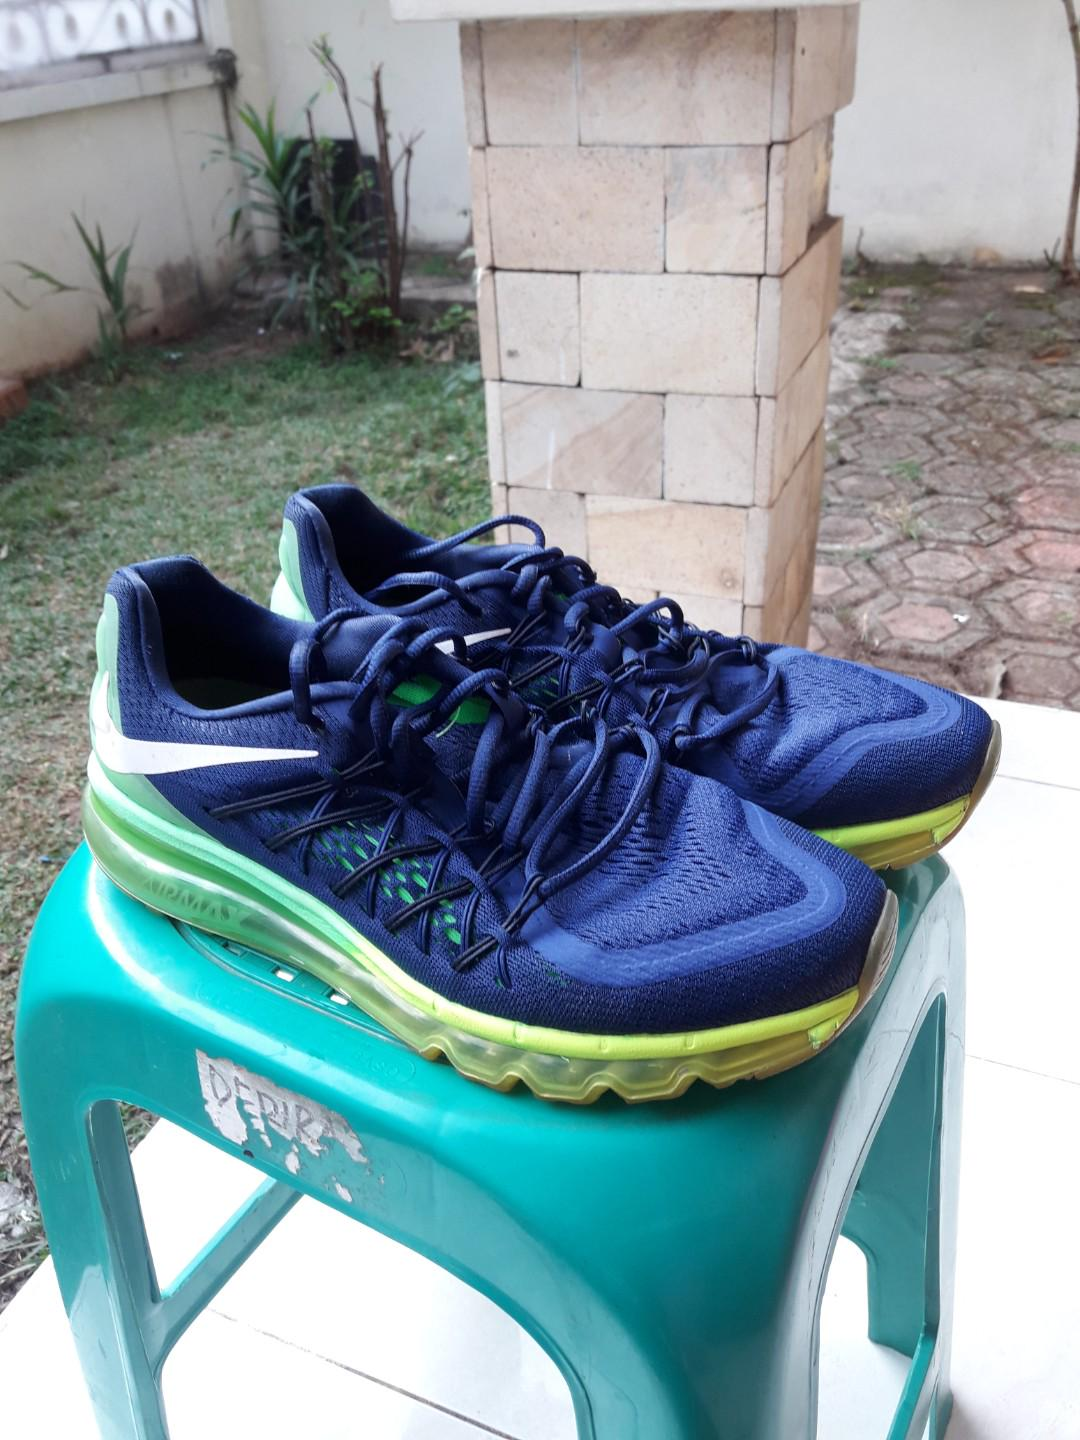 Nike air maxx super original